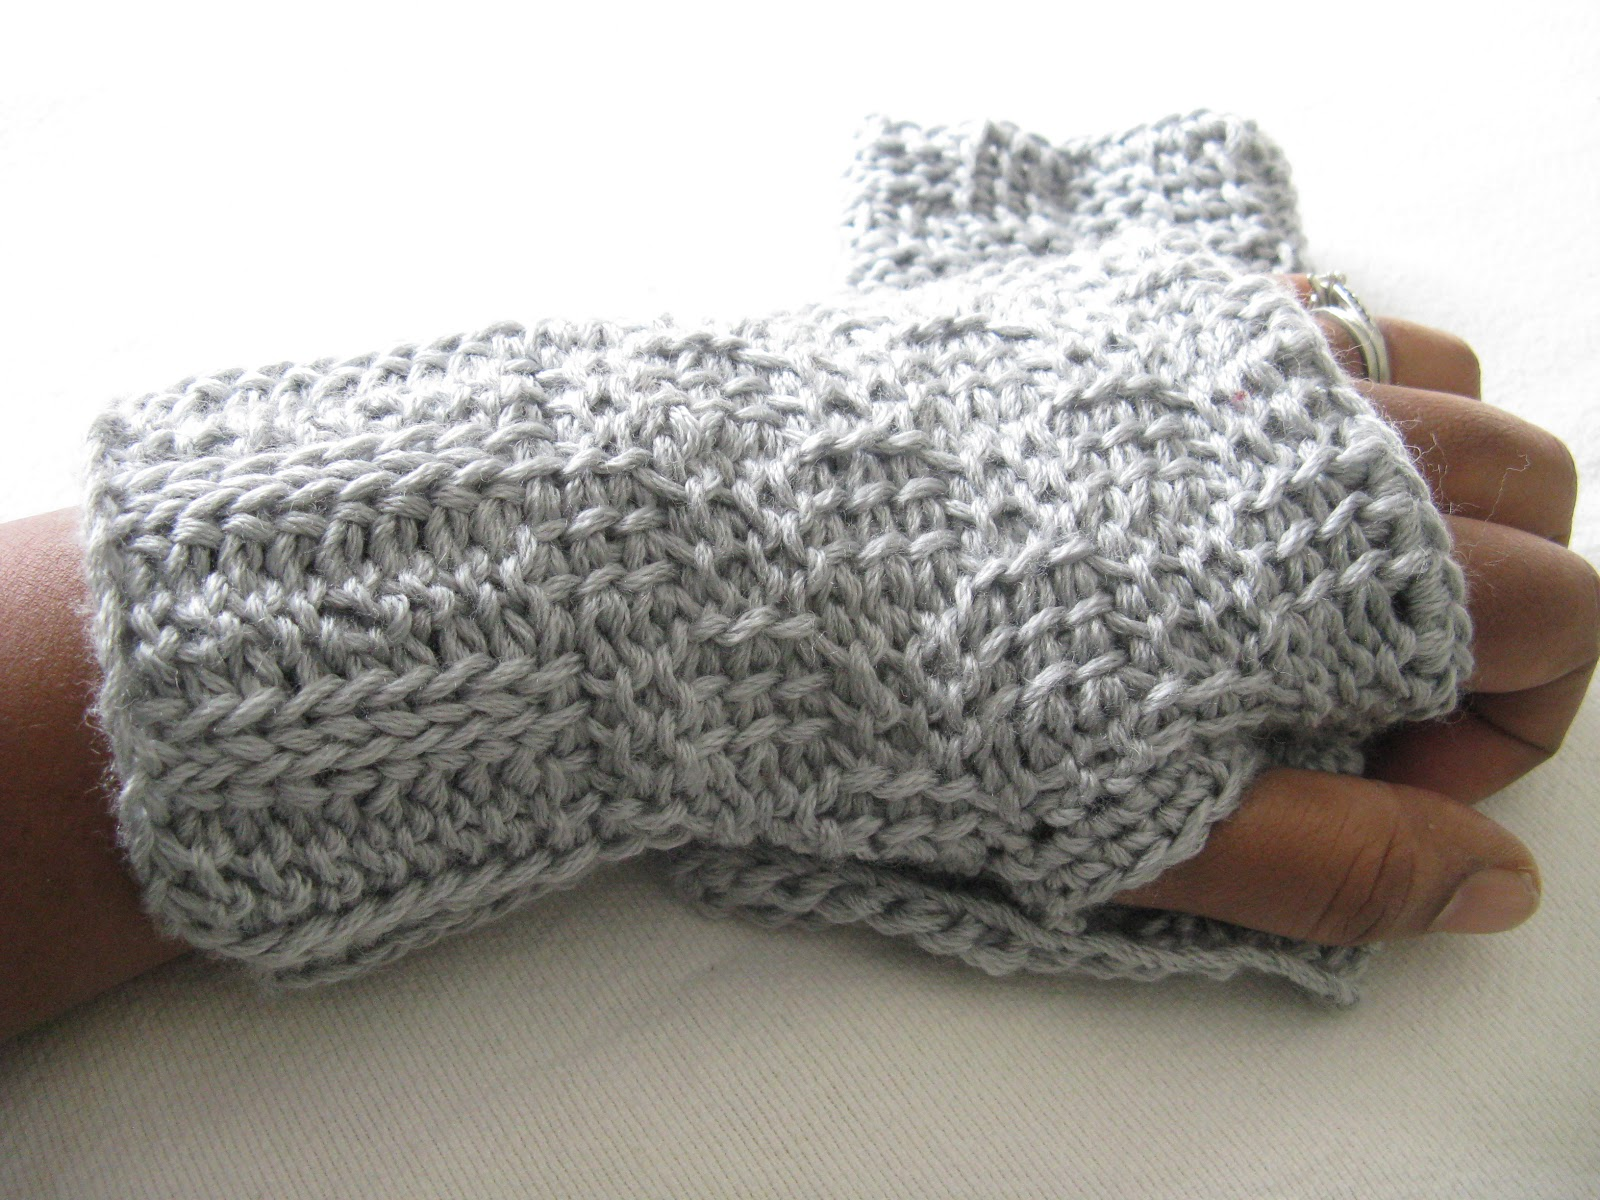 Crochet Stitches Youtube Channel : Yarn Obsession: Tunisian Crochet Basketweave Wristwarmers